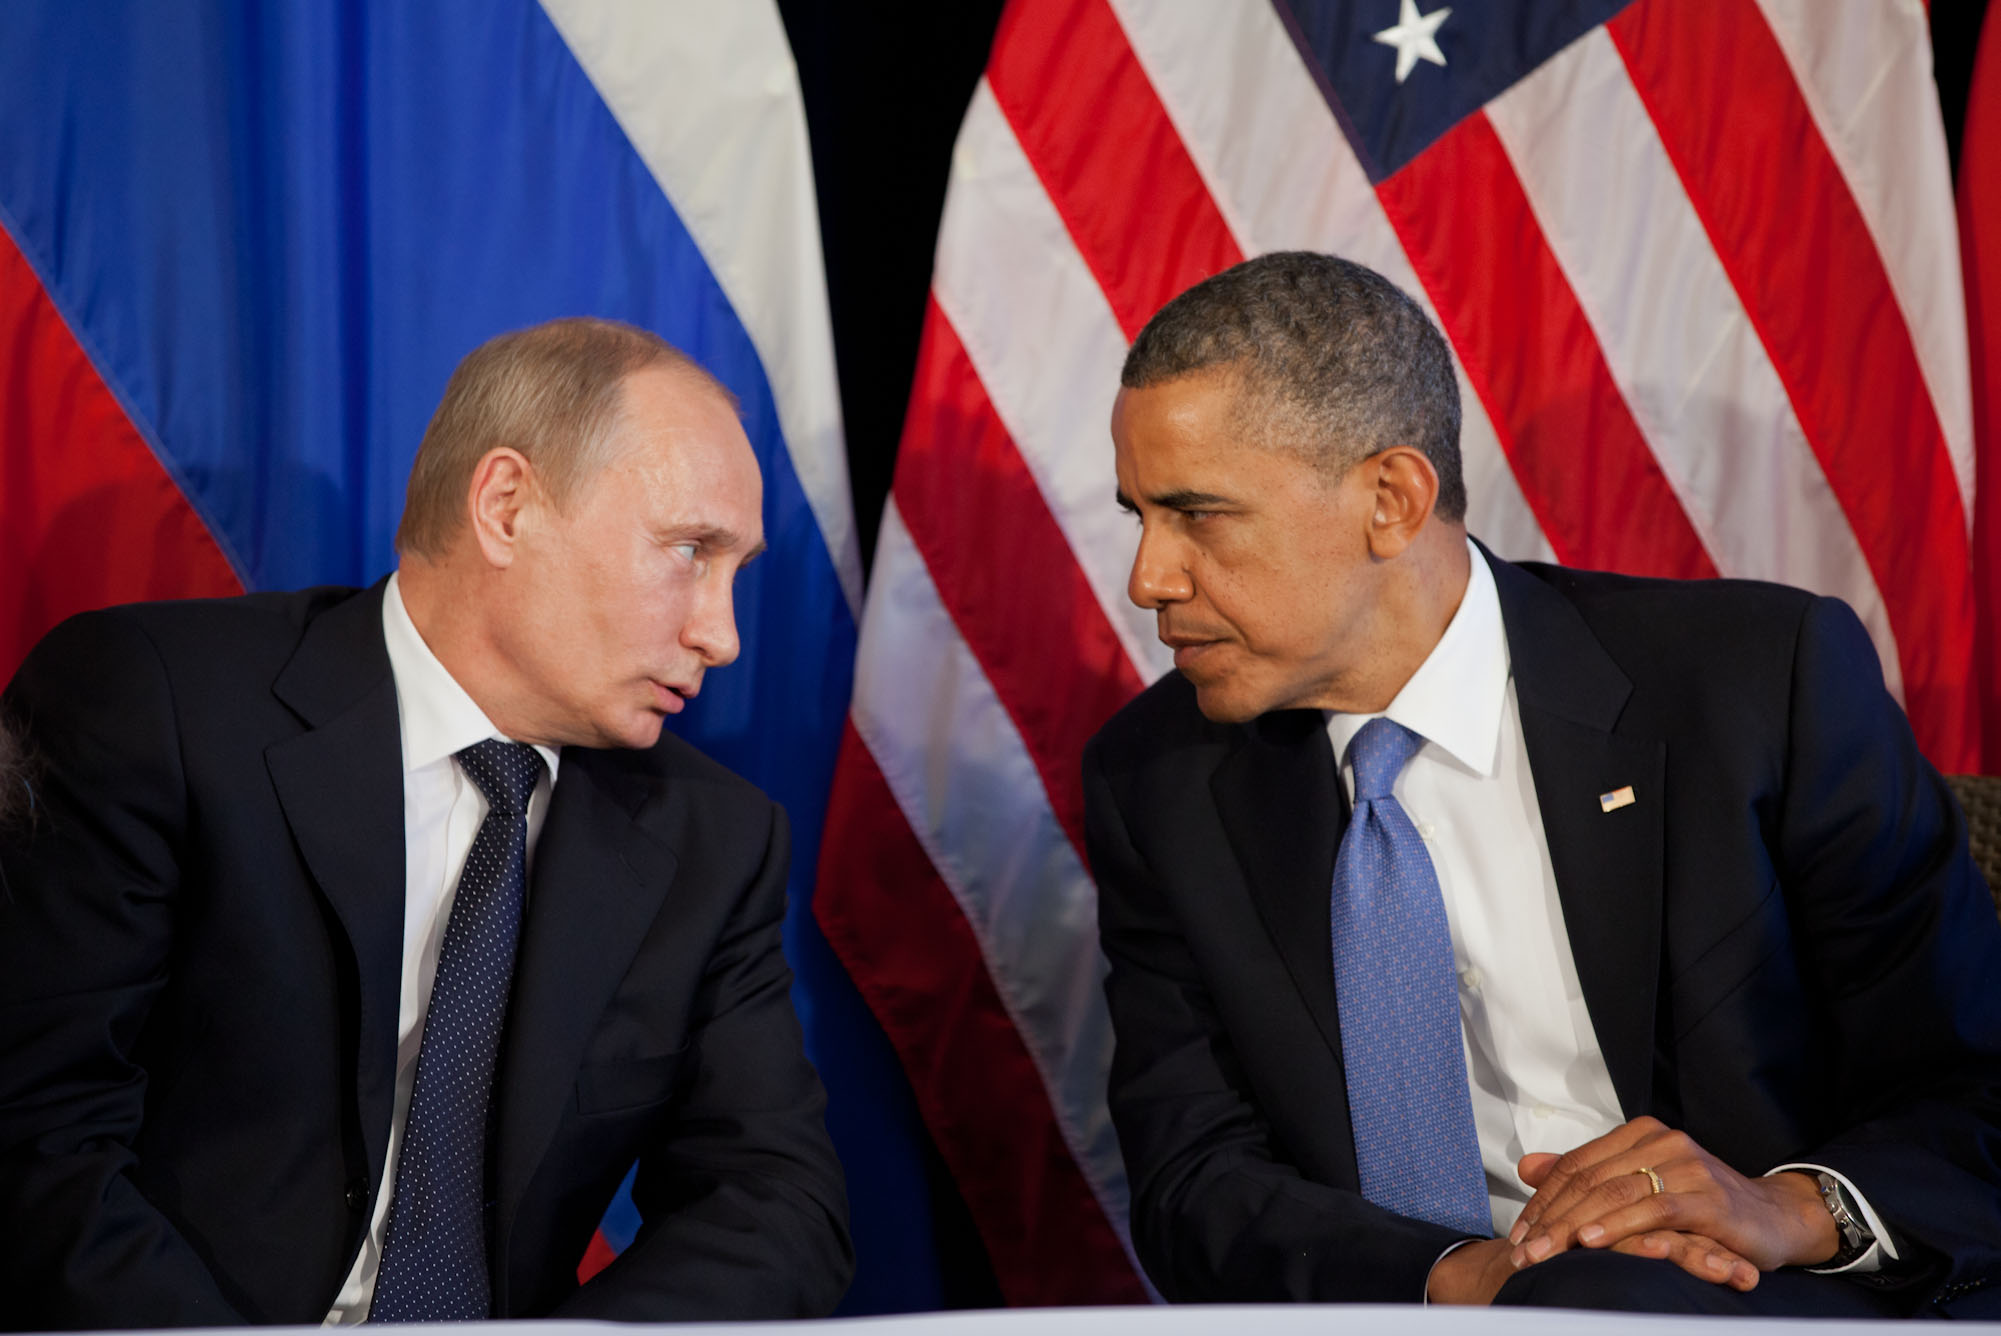 President Barack Obama participates in a bilateral meeting with President Vladimir Putin of Russia (June 18, 2012)